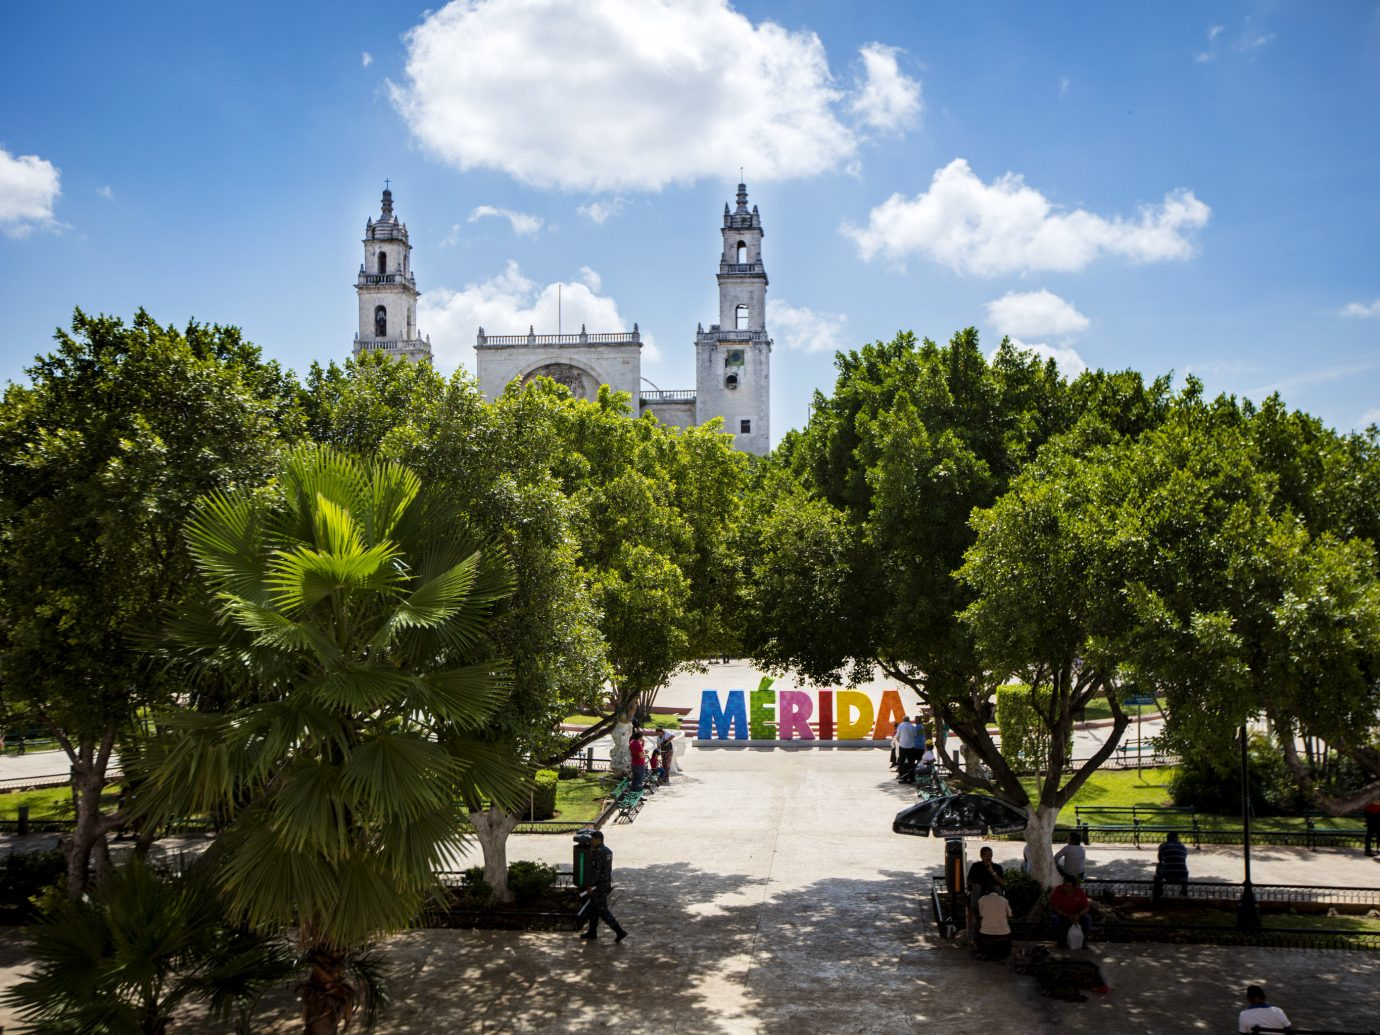 Mexico Trip Ideas Weekend Getaways tree sky outdoor City landmark Town neighbourhood urban area human settlement tourism vacation plaza town square cityscape Downtown park flower plant day